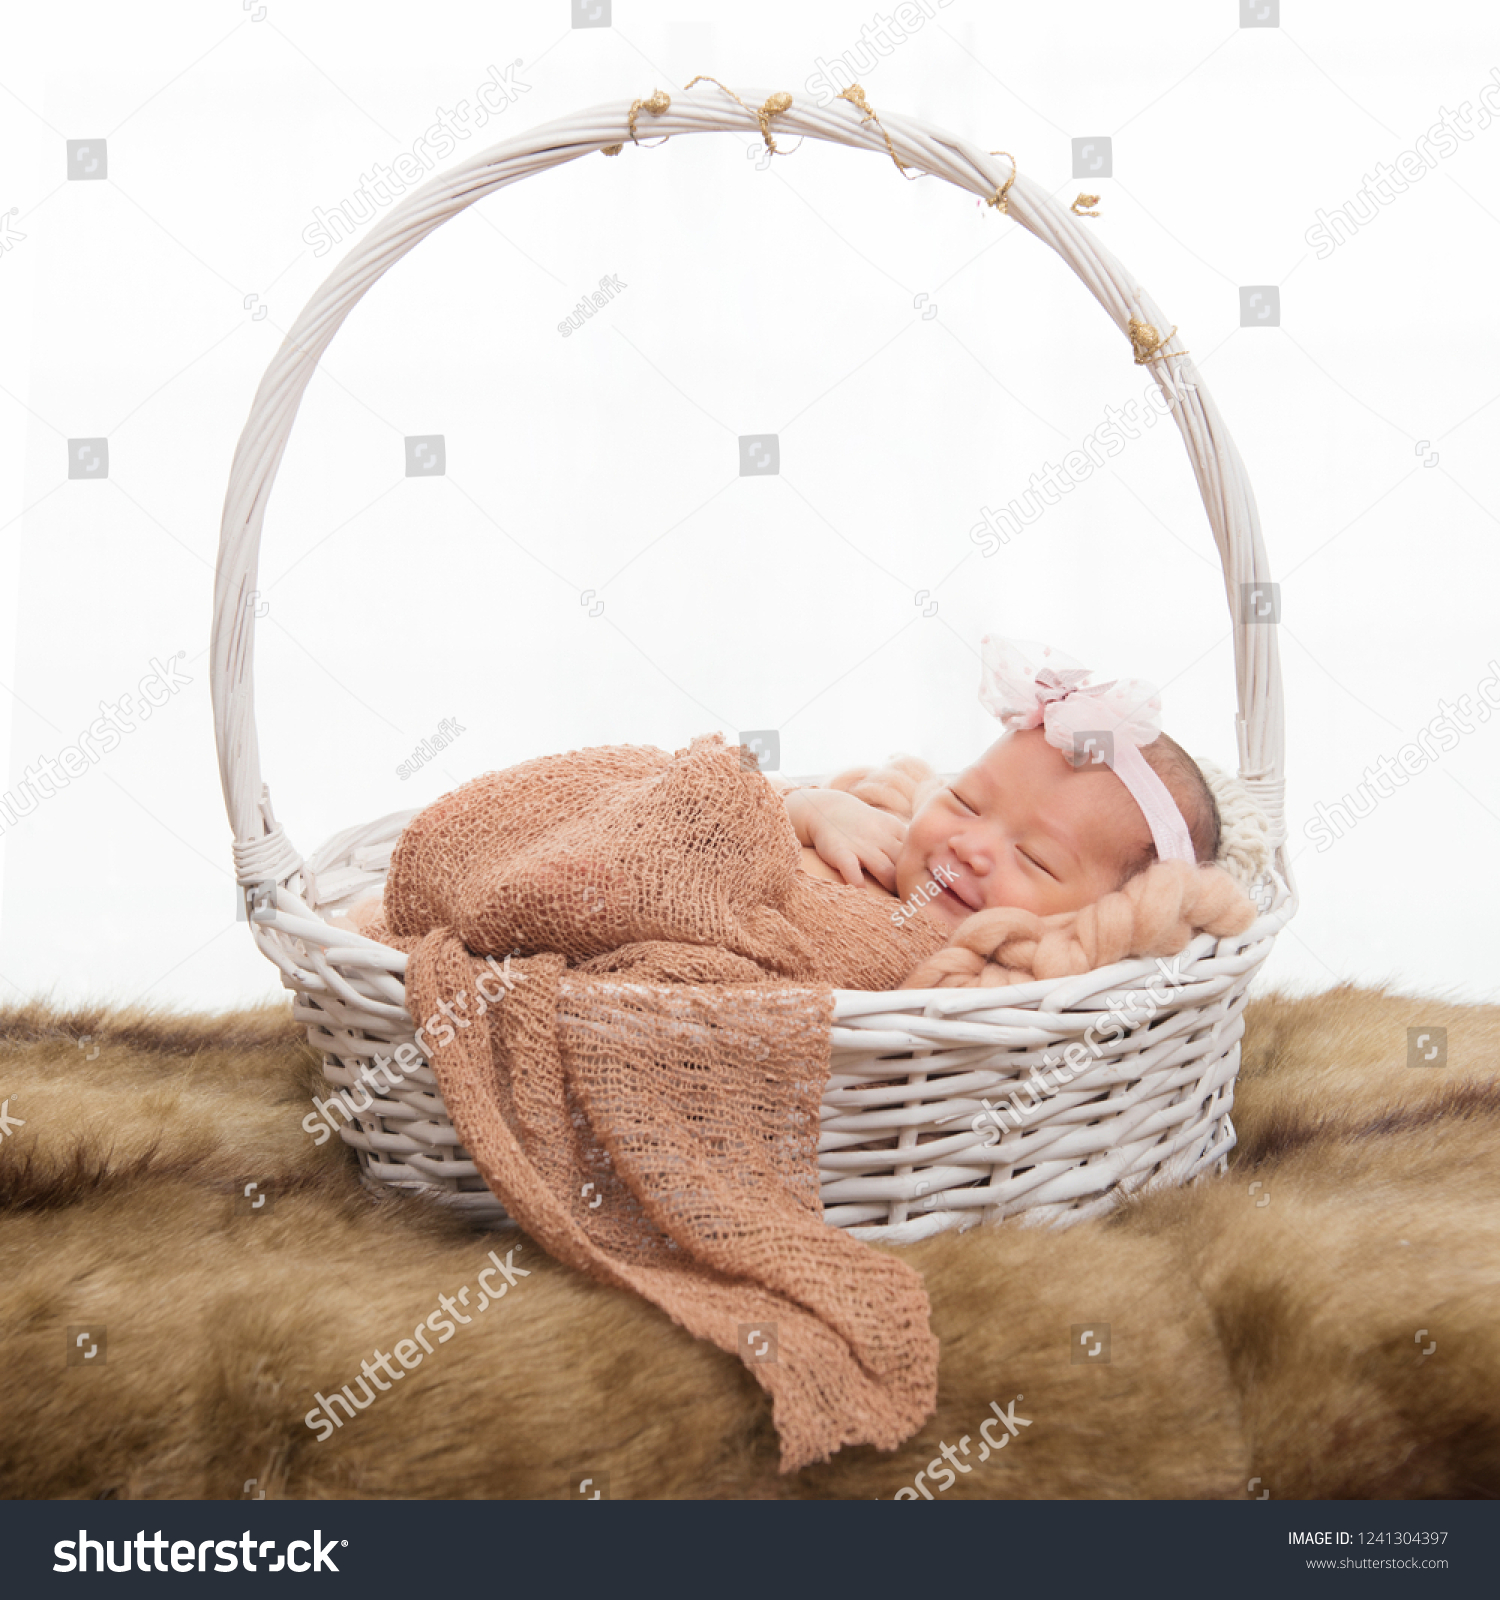 Newborn Baby Sleep On White Basket Stock Photo Edit Now 1241304397